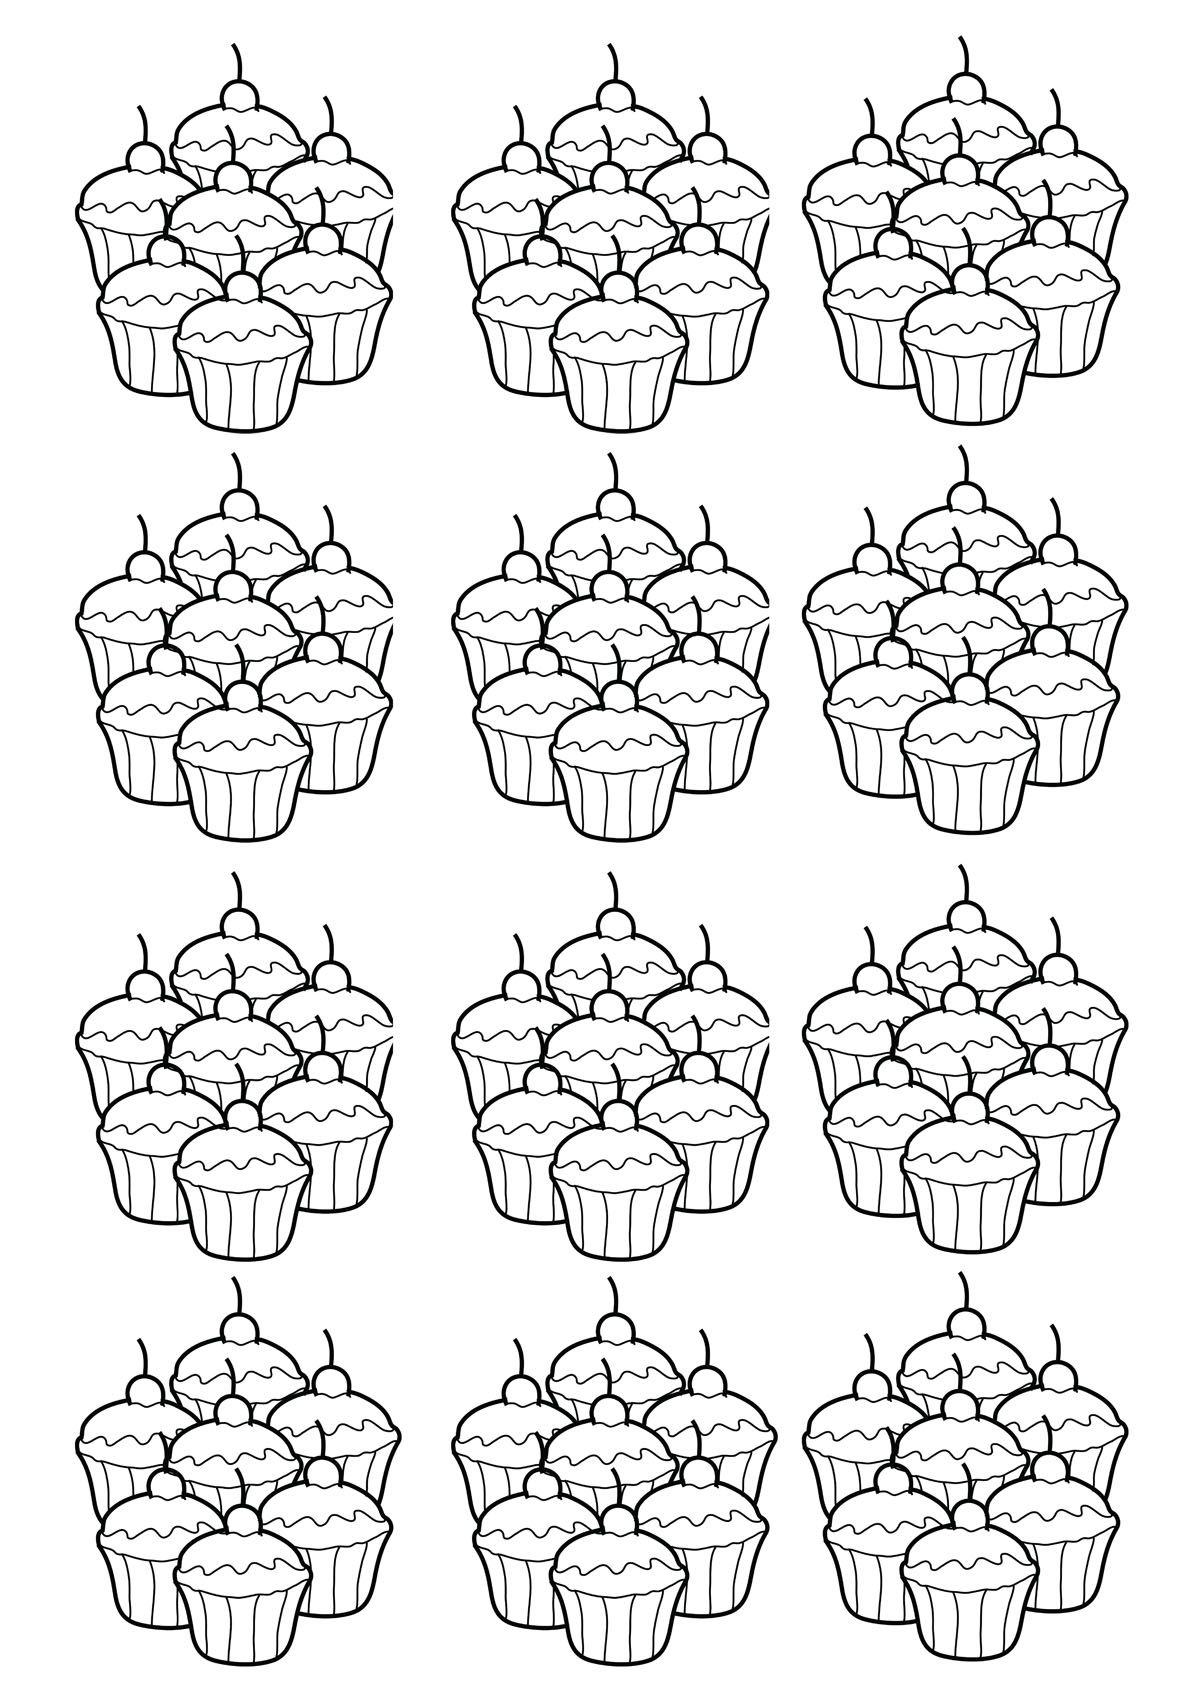 Color art coloring books free - Basic Mosaic Of Cupcakes To Color From The Gallery Cup Cakes Free Coloring